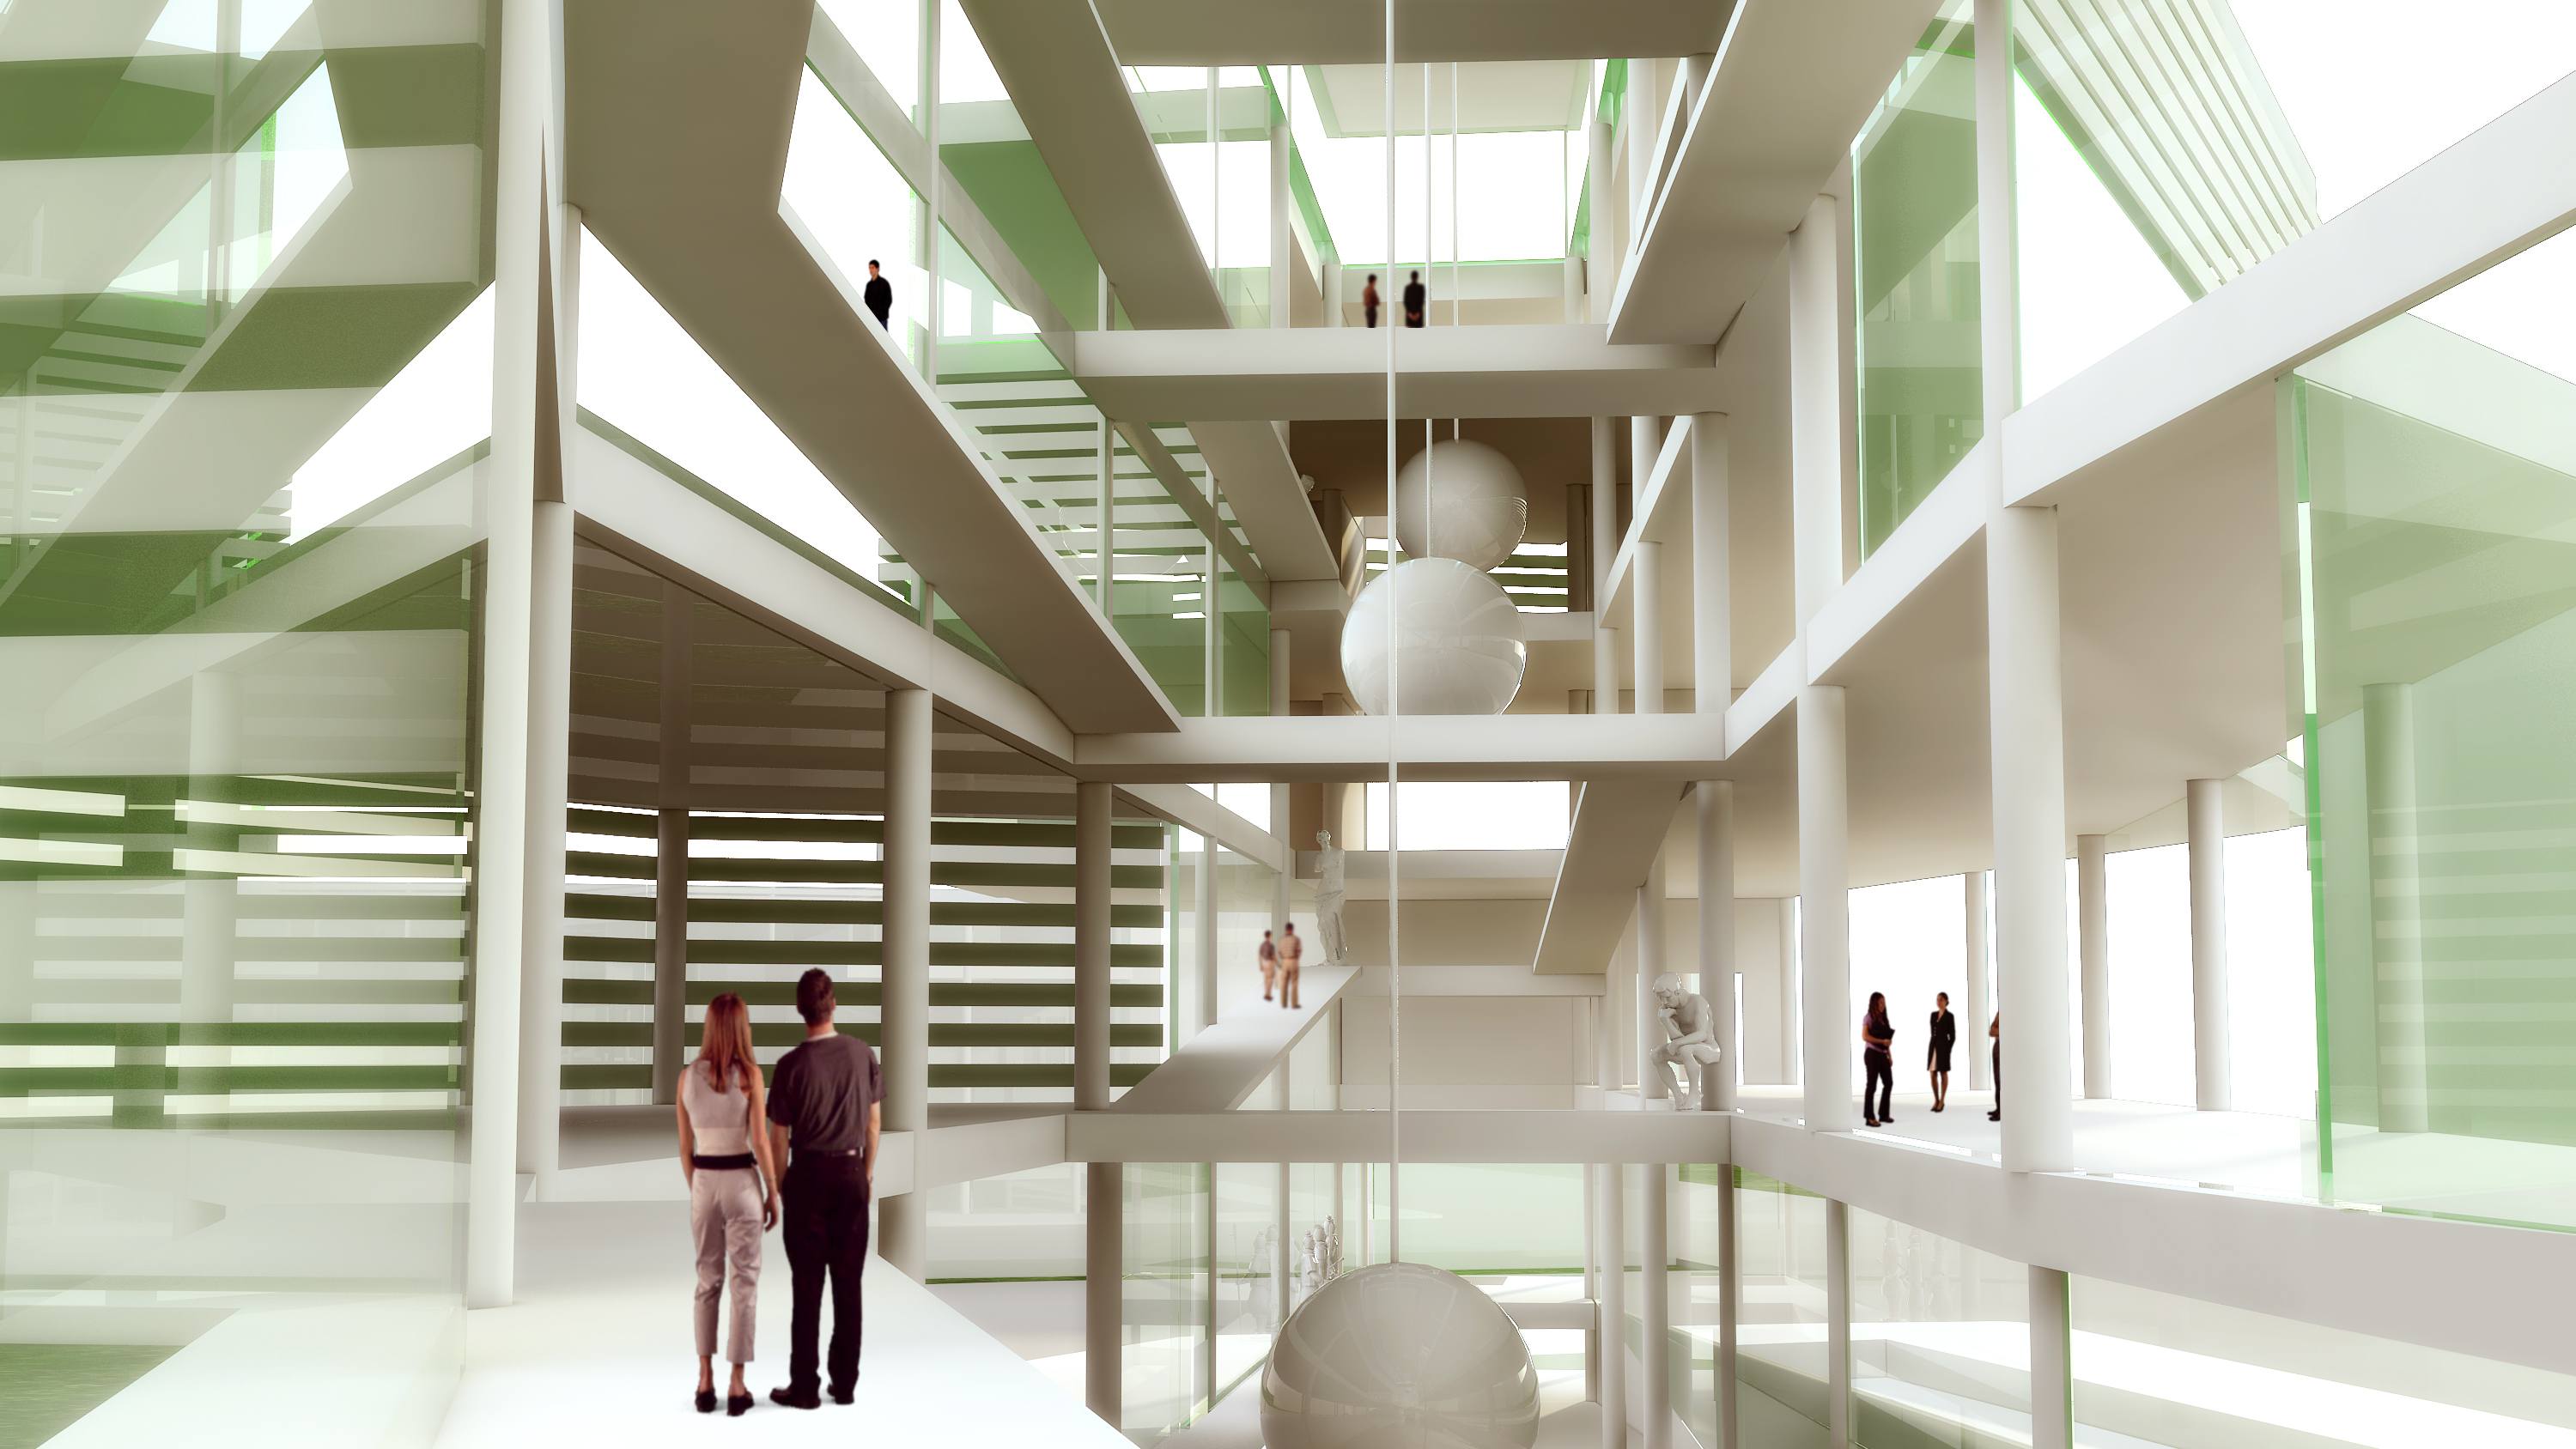 concept science museum interior rendering